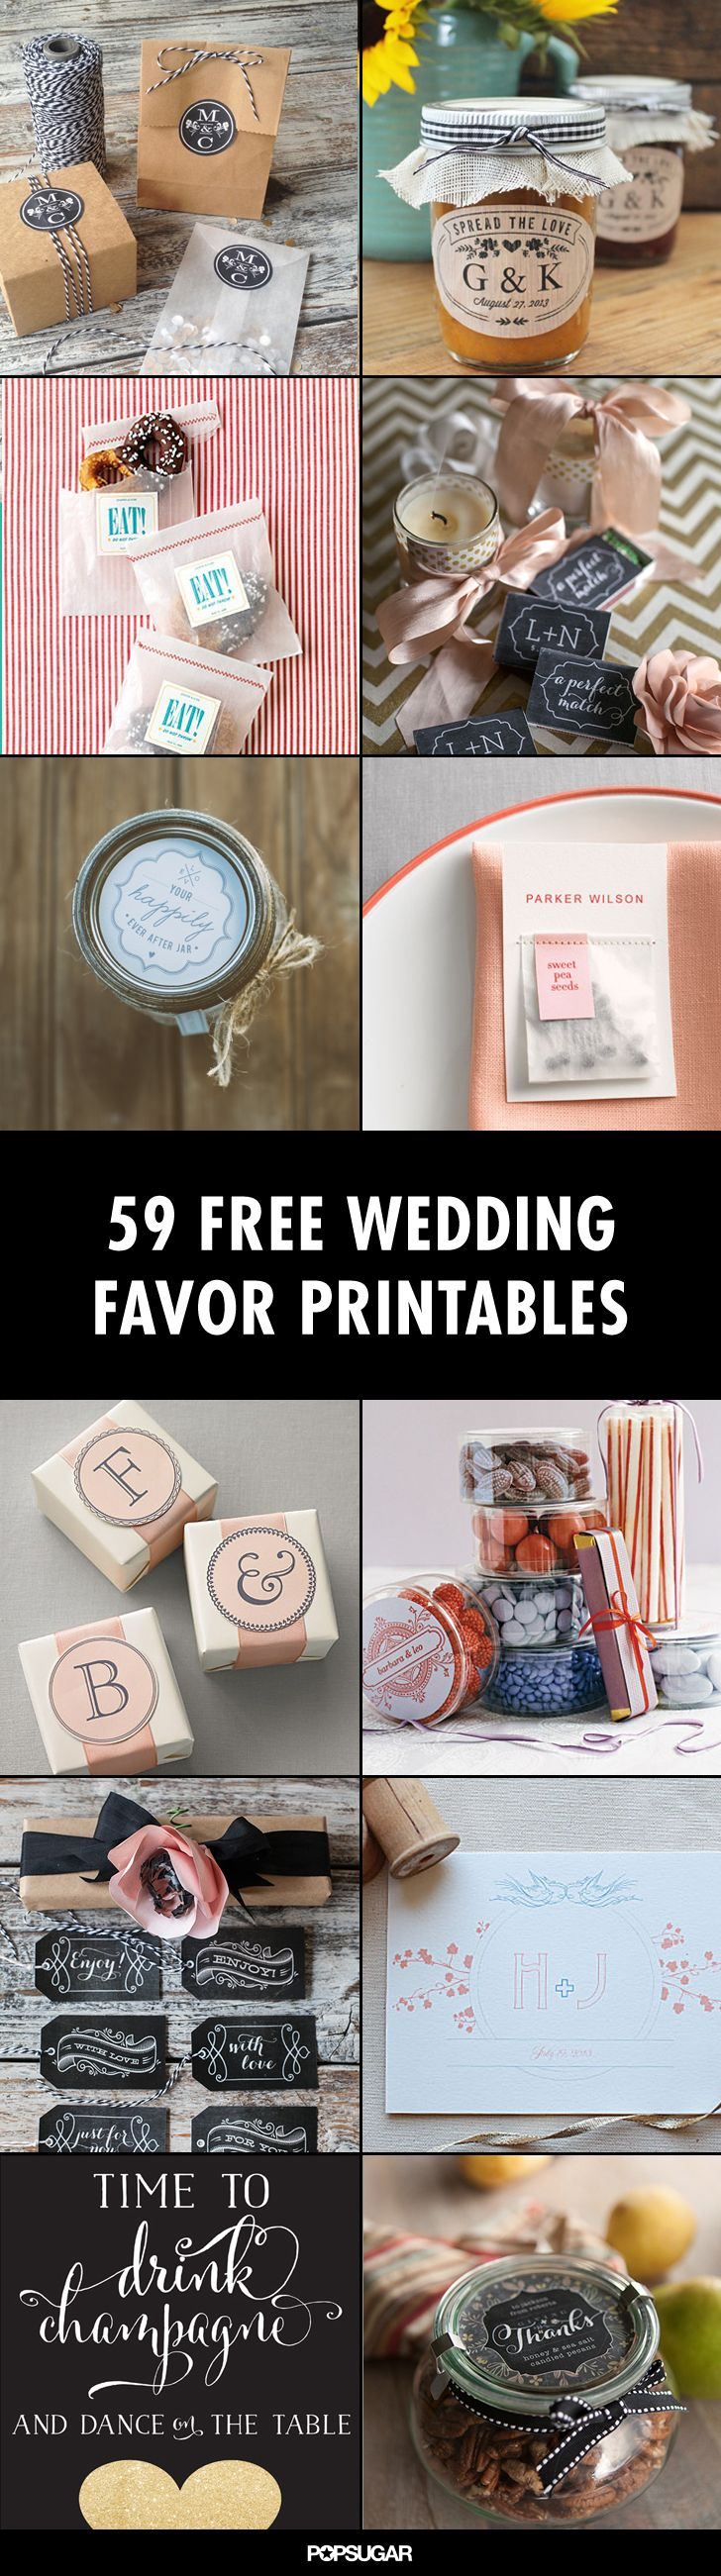 59 Beautiful Wedding Favor Printables to Download For Free